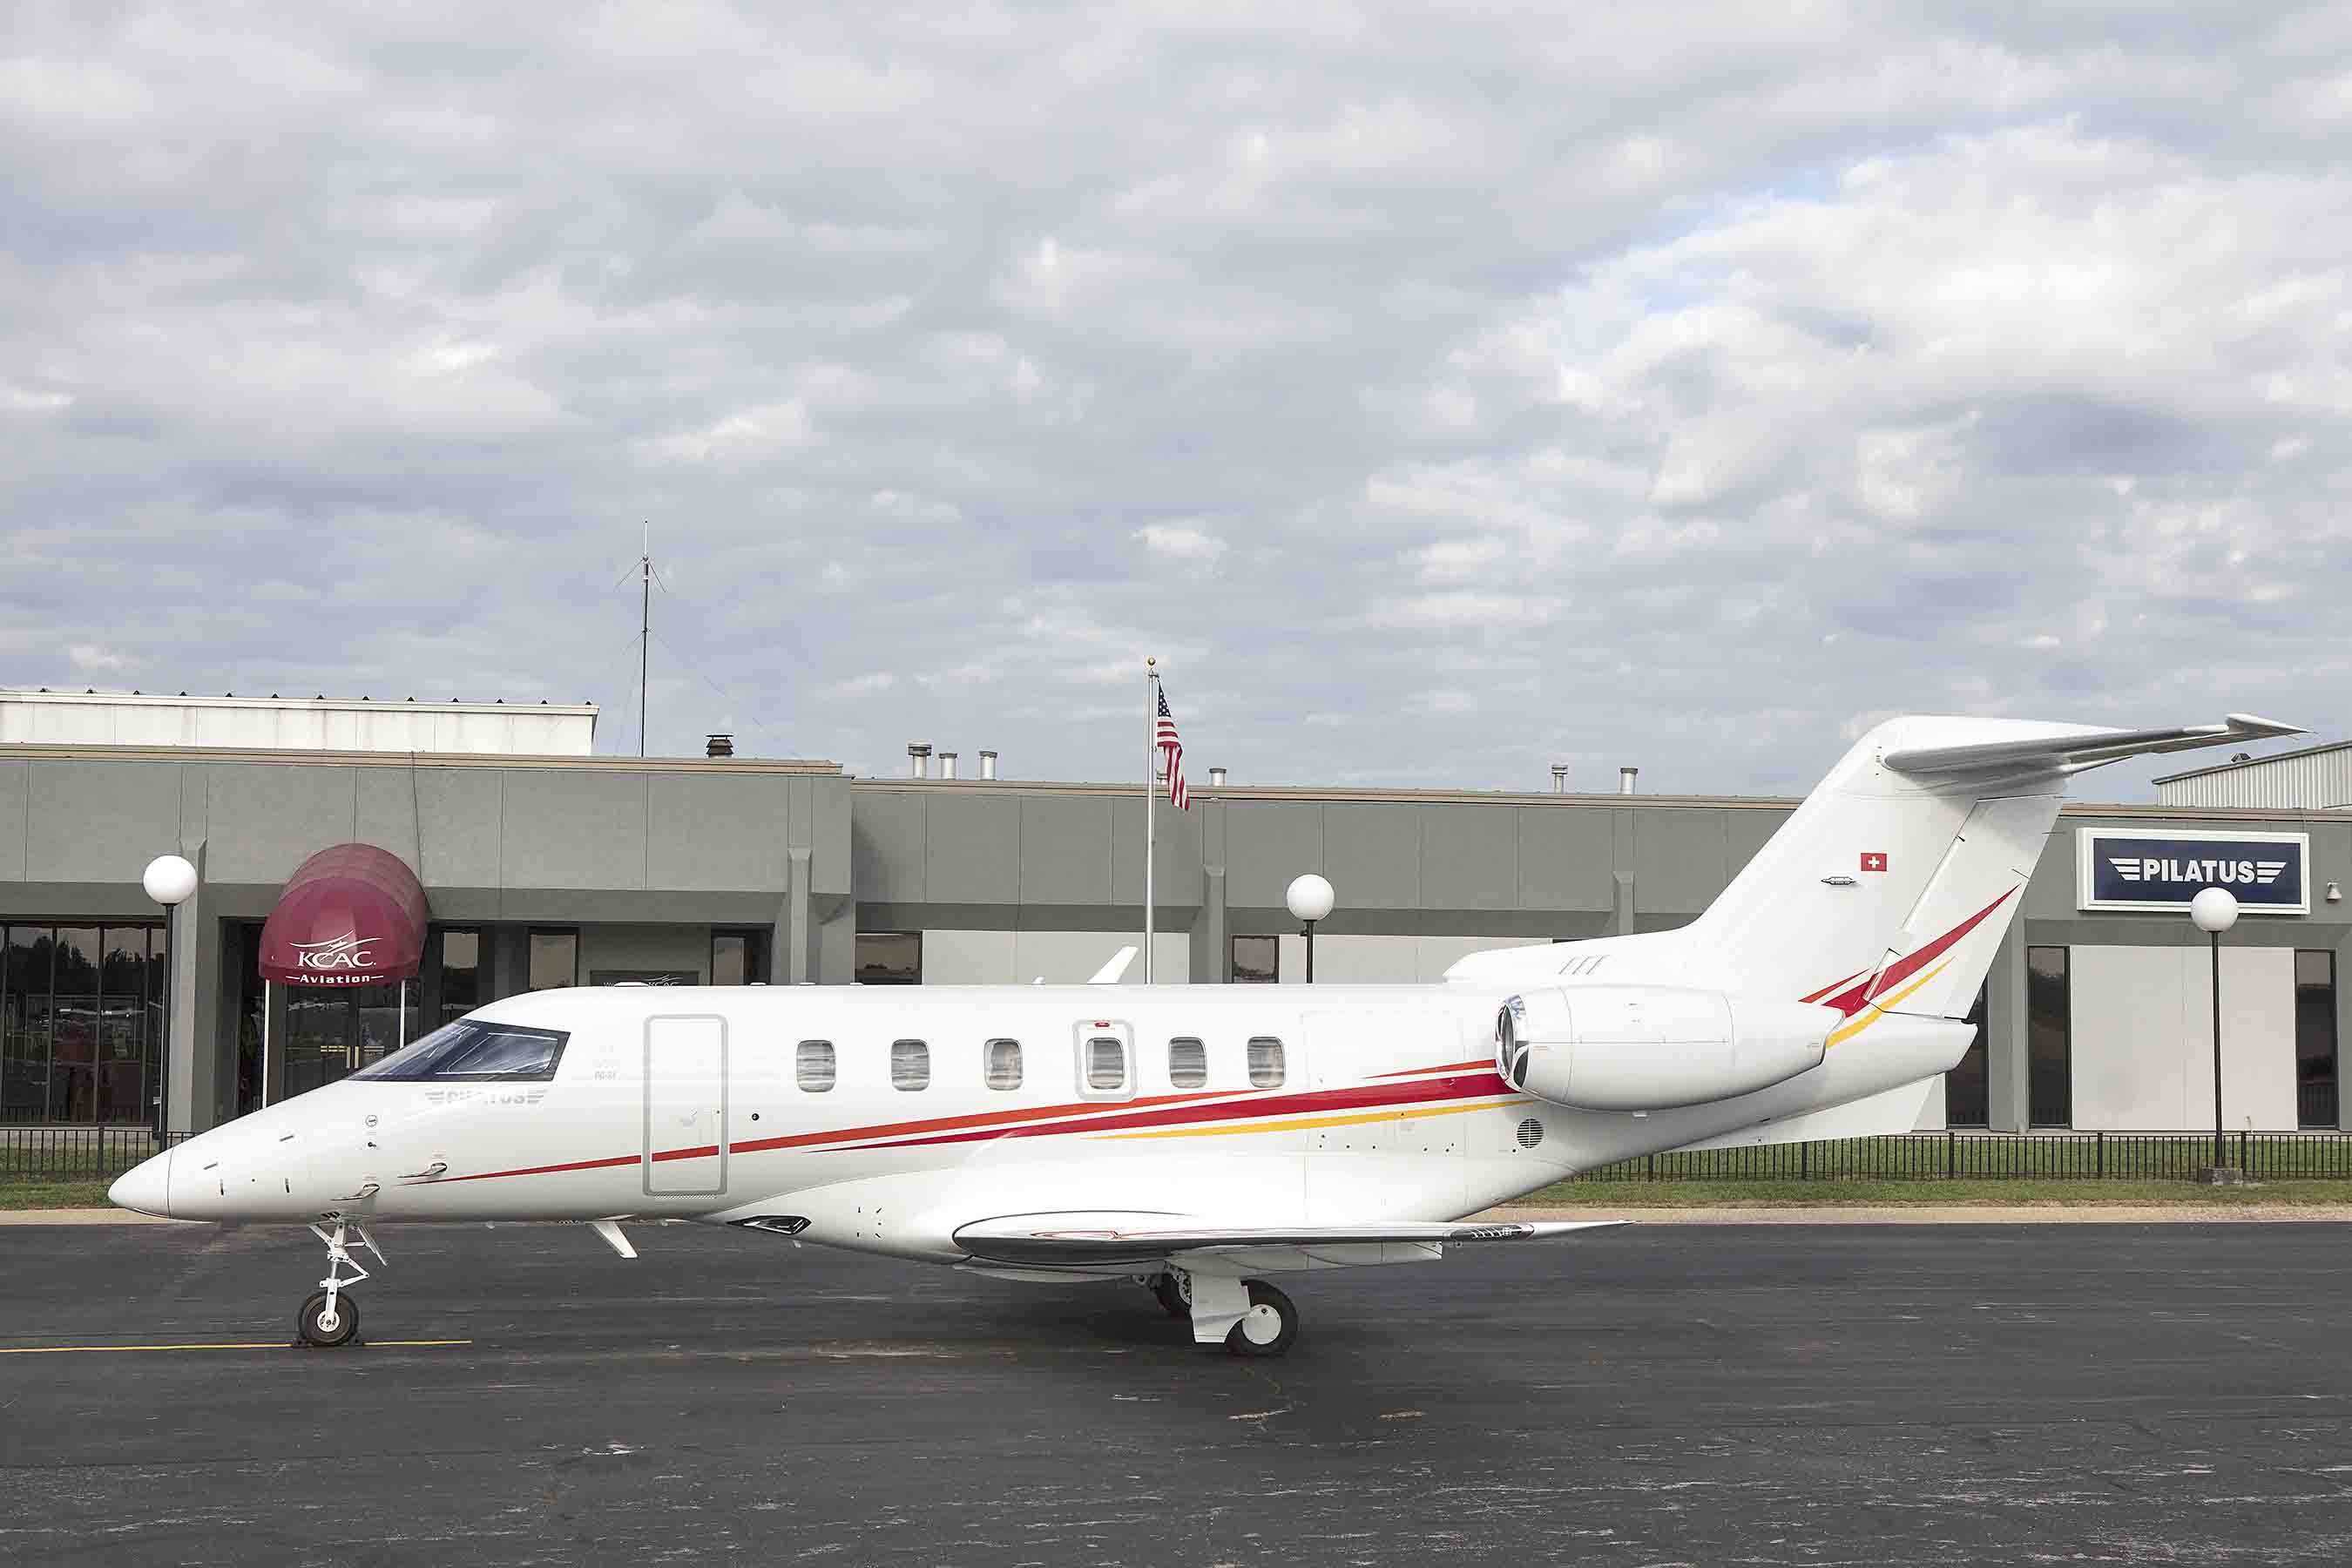 KCAC Aviation Delivers First Pilatus PC-24 in Midwest